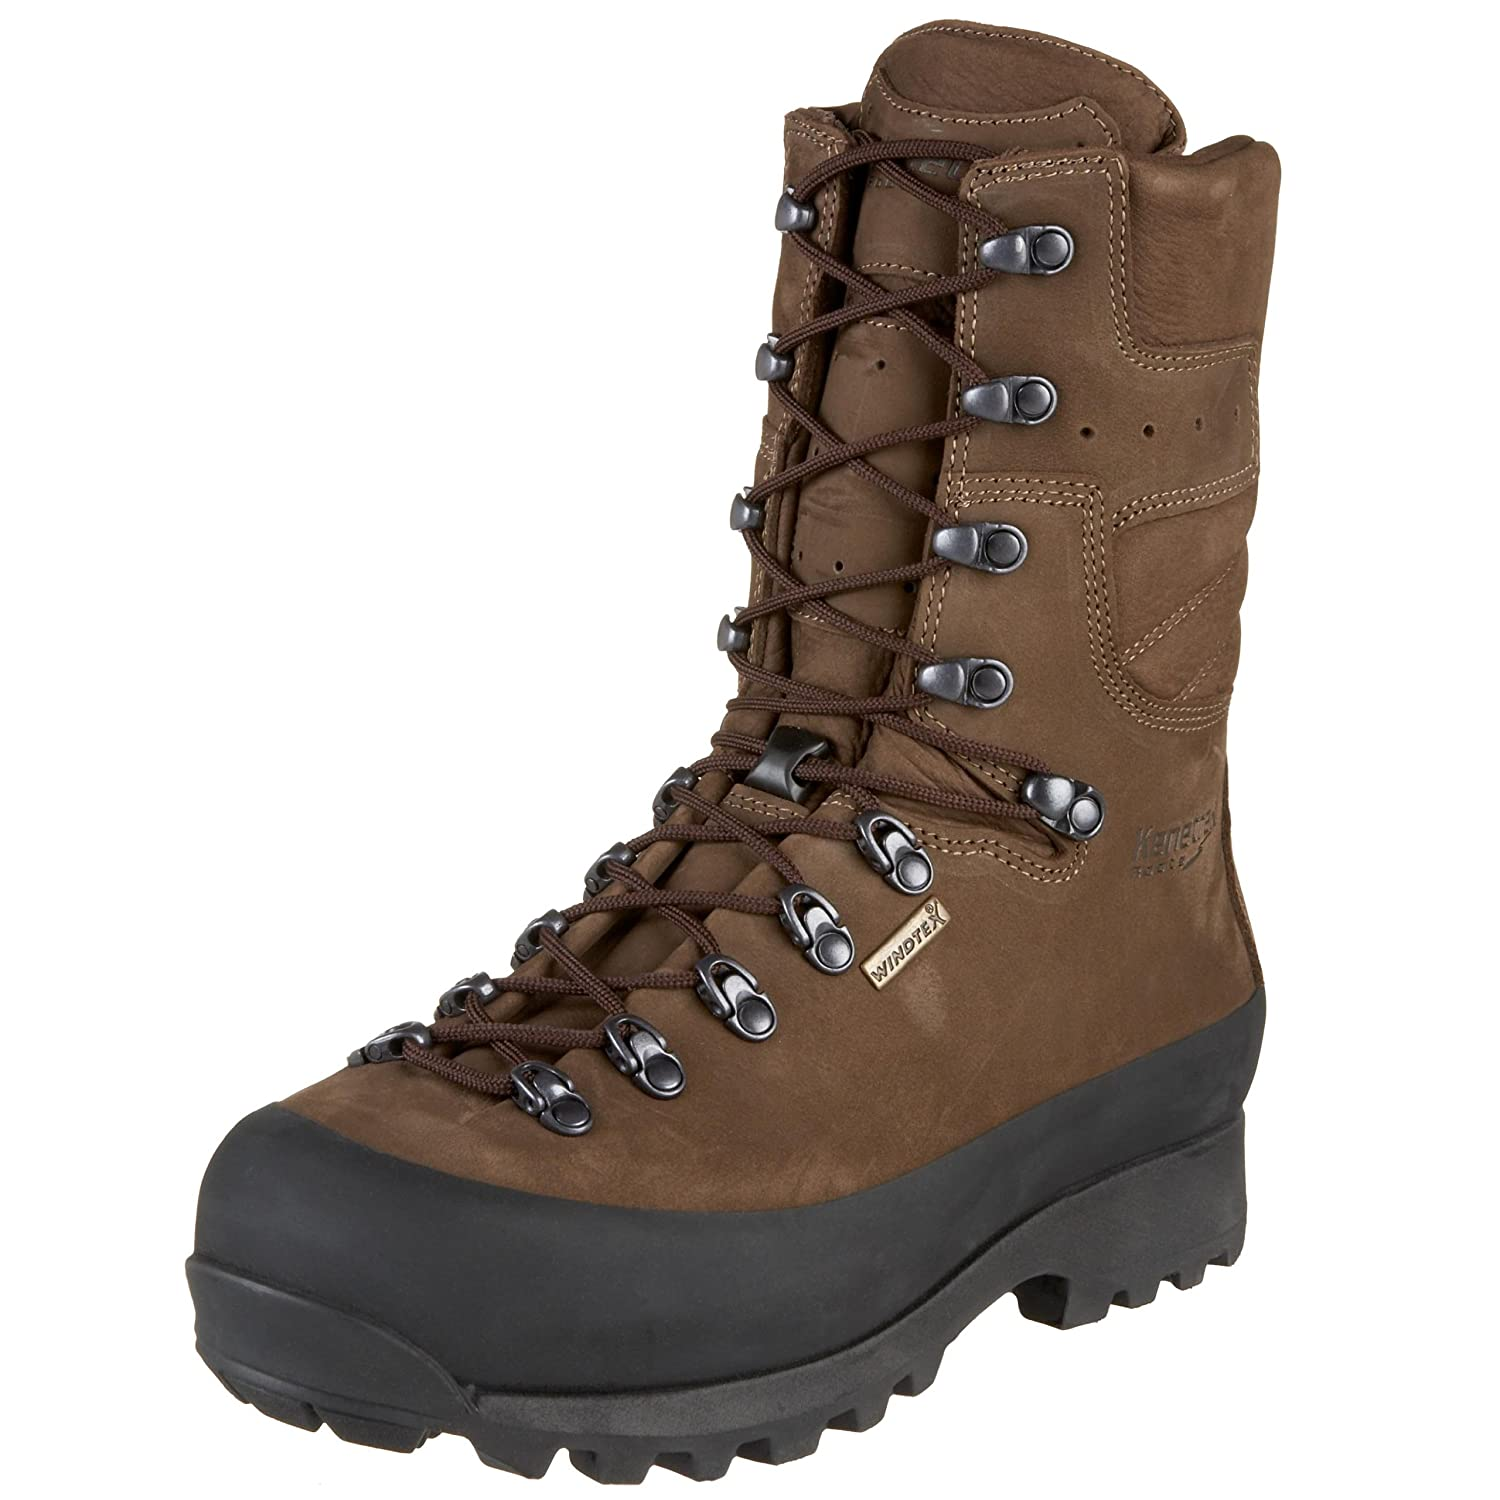 Kenetrek Mountain Extreme Hunting Boot